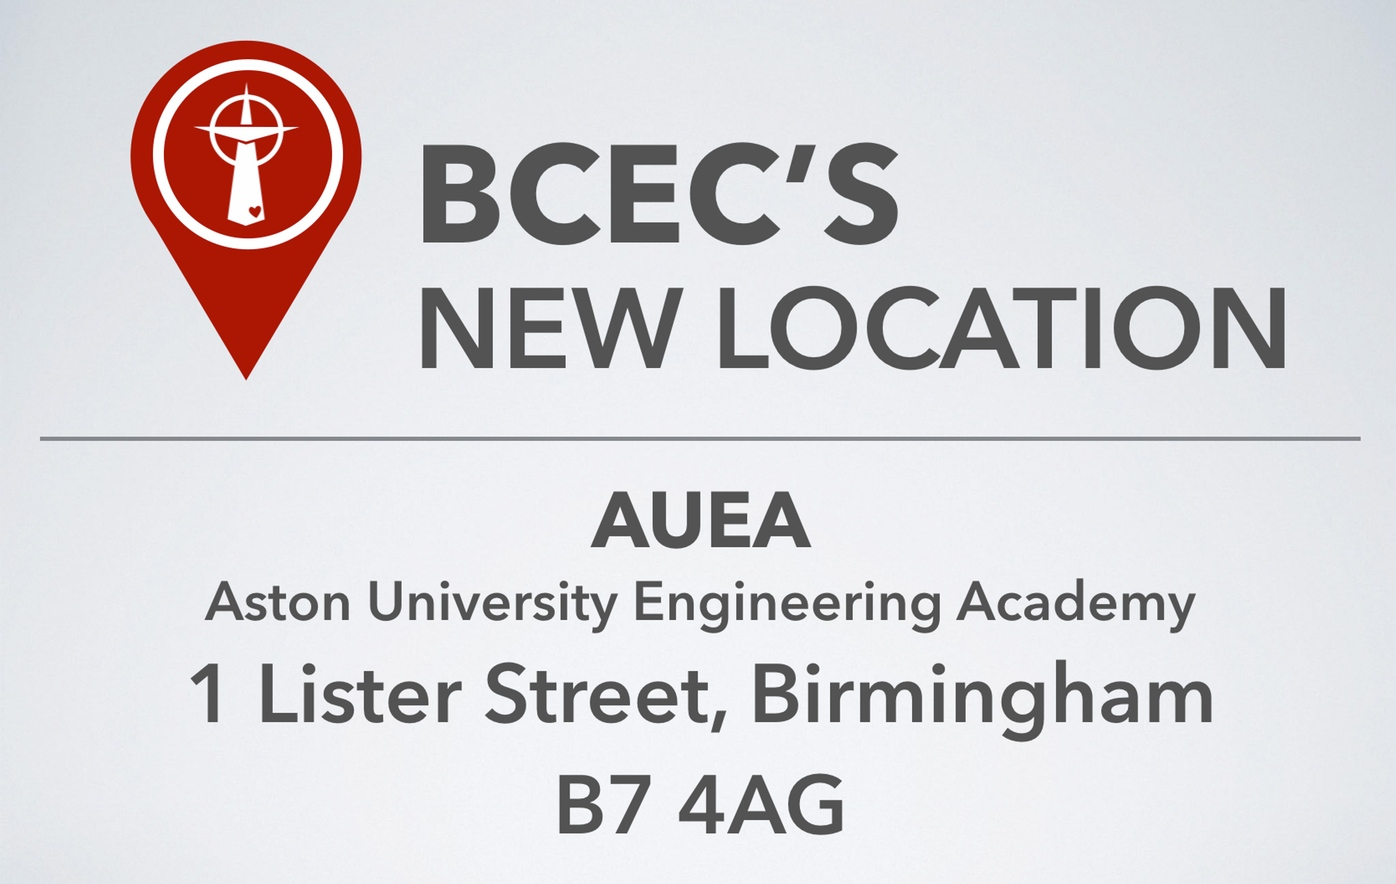 BCEC'S NEW LOCATION